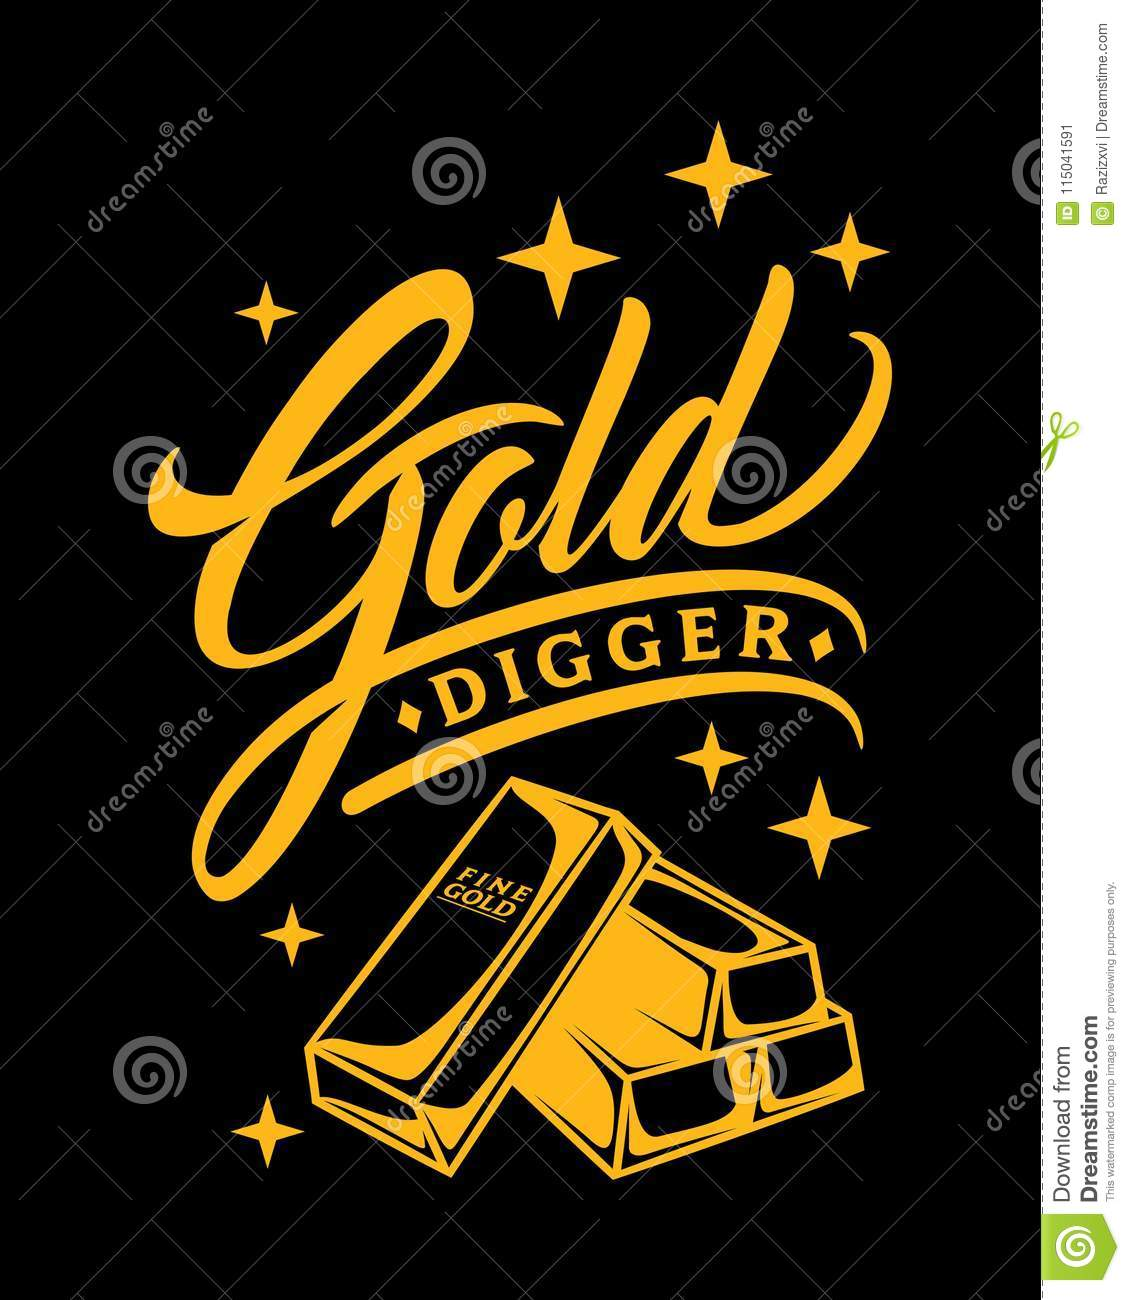 Bling Luxurious Glam Typo Gold Digger Vector Illustration